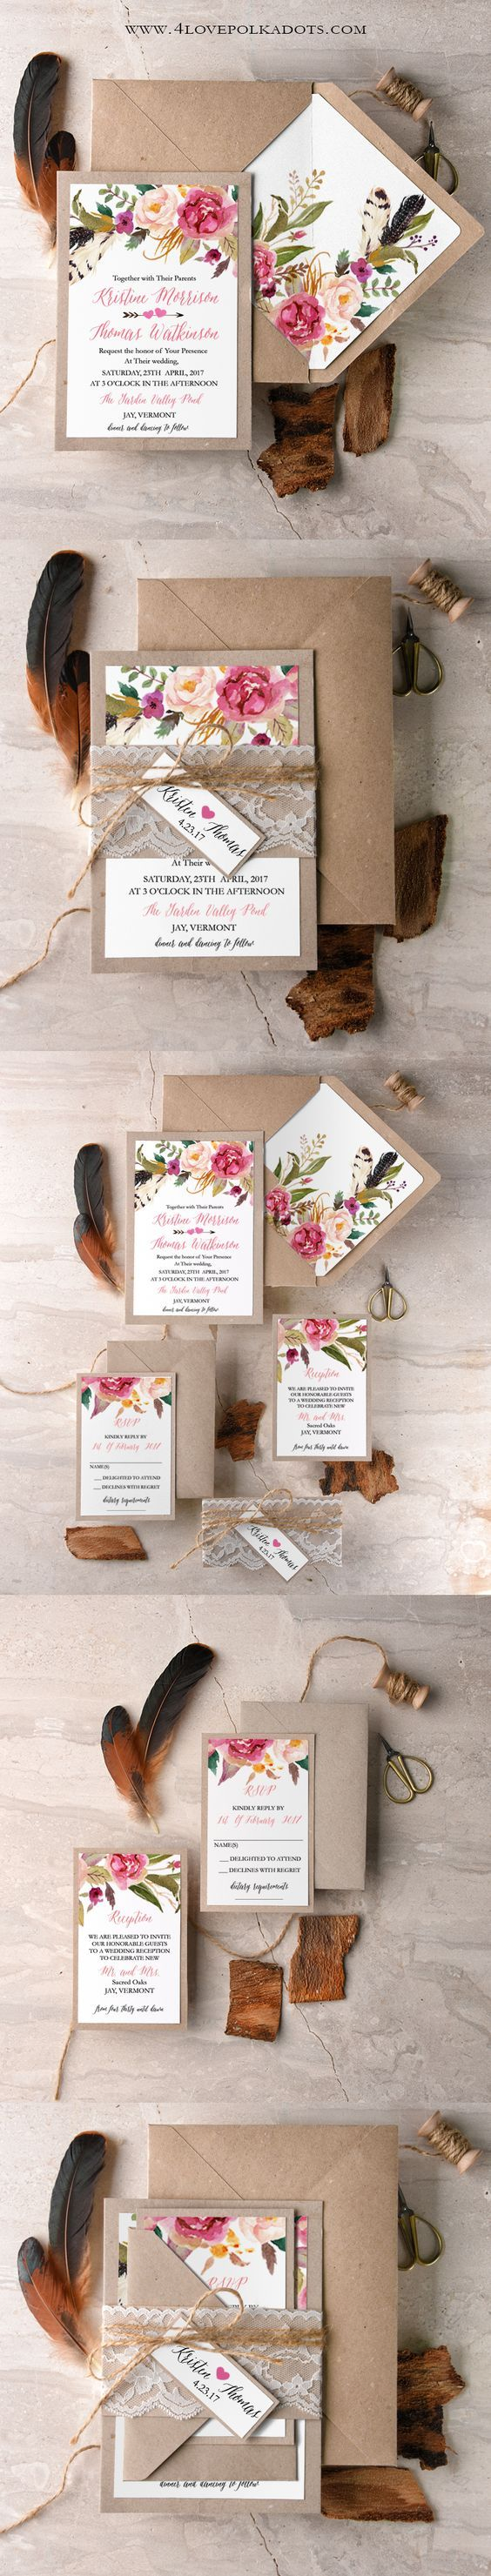 Boho Floral Wedding Invitation - Eco Papers & Lace  ||  @4lovepolkadots